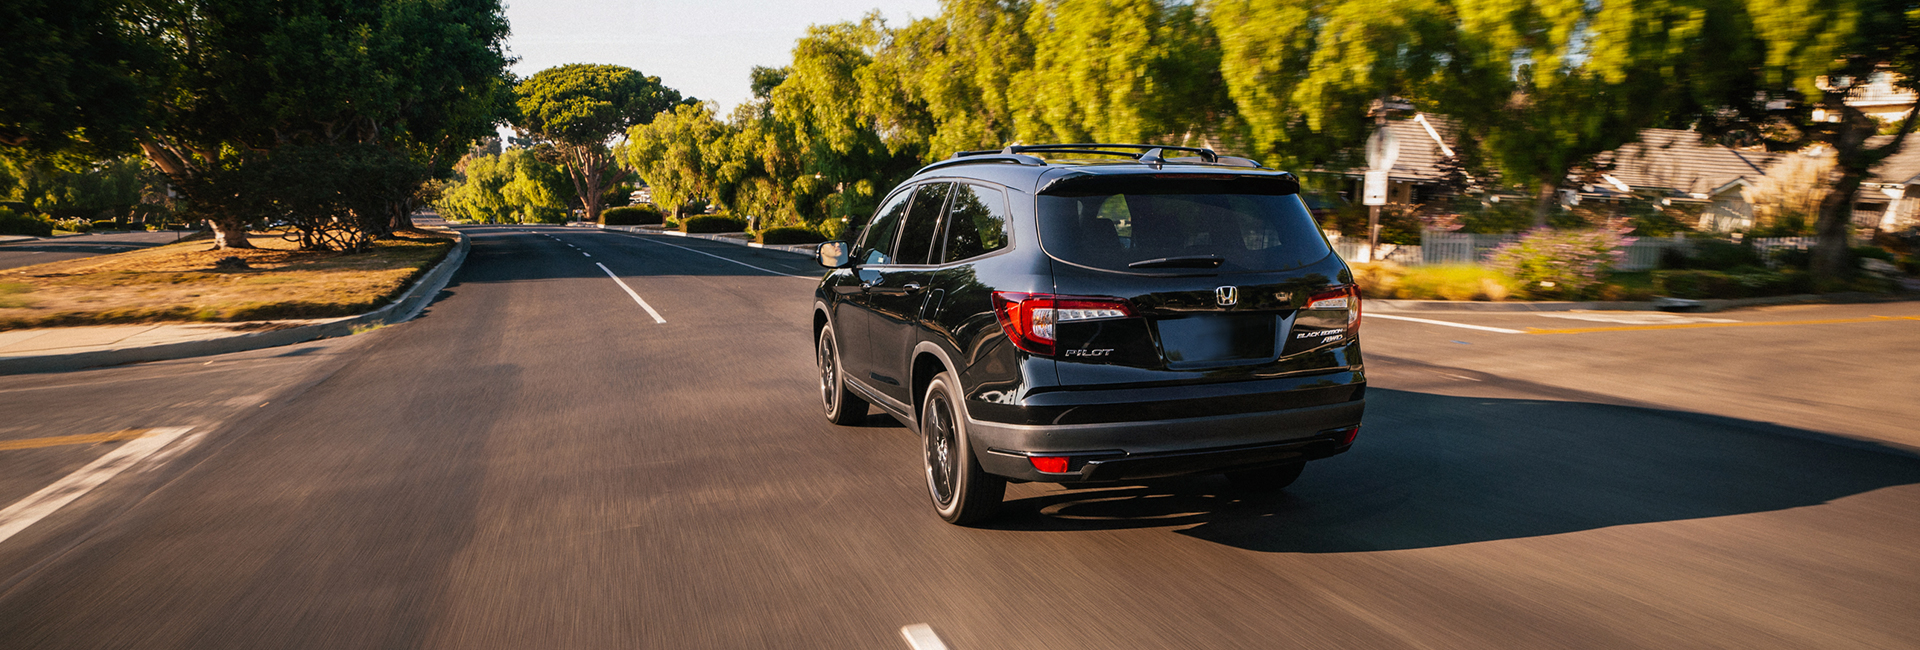 Rear view of a black Honda Pilot in motion